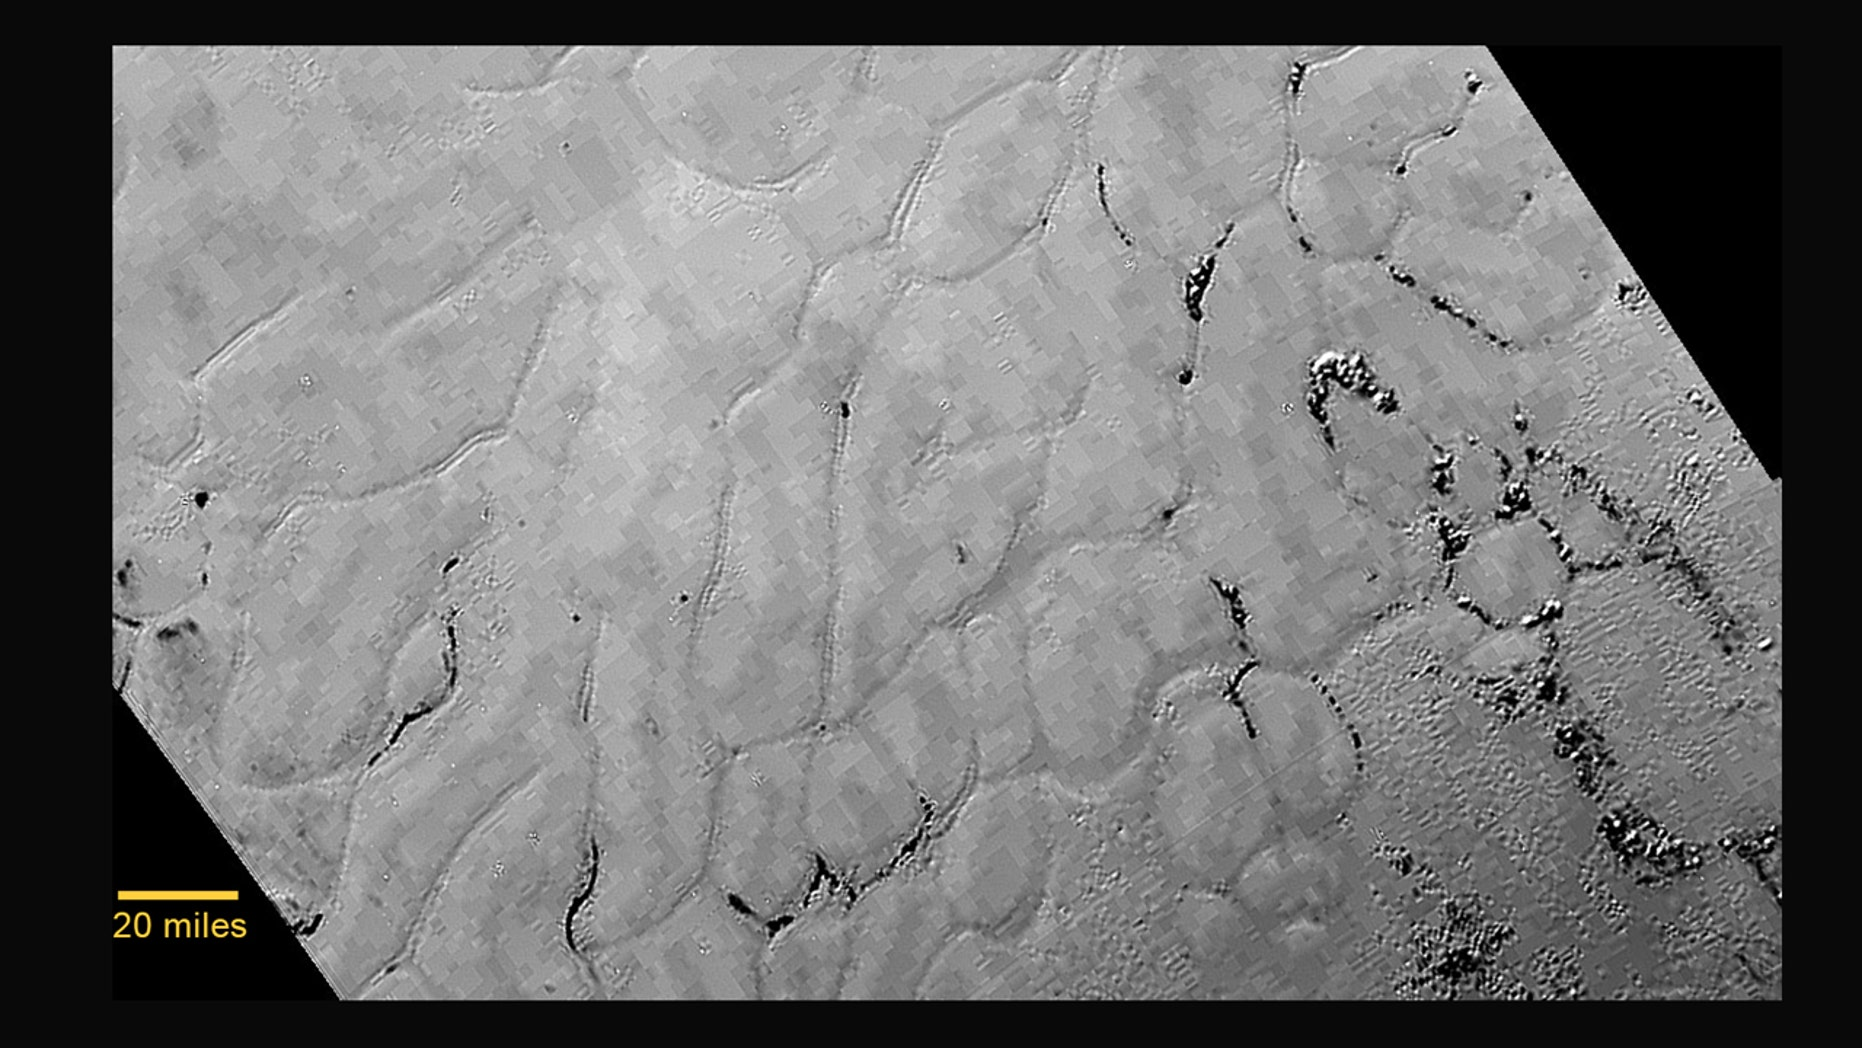 In the center left of Pluto's vast heart-shaped feature lies a vast, craterless plain that appears to be no more than 100 million years old.